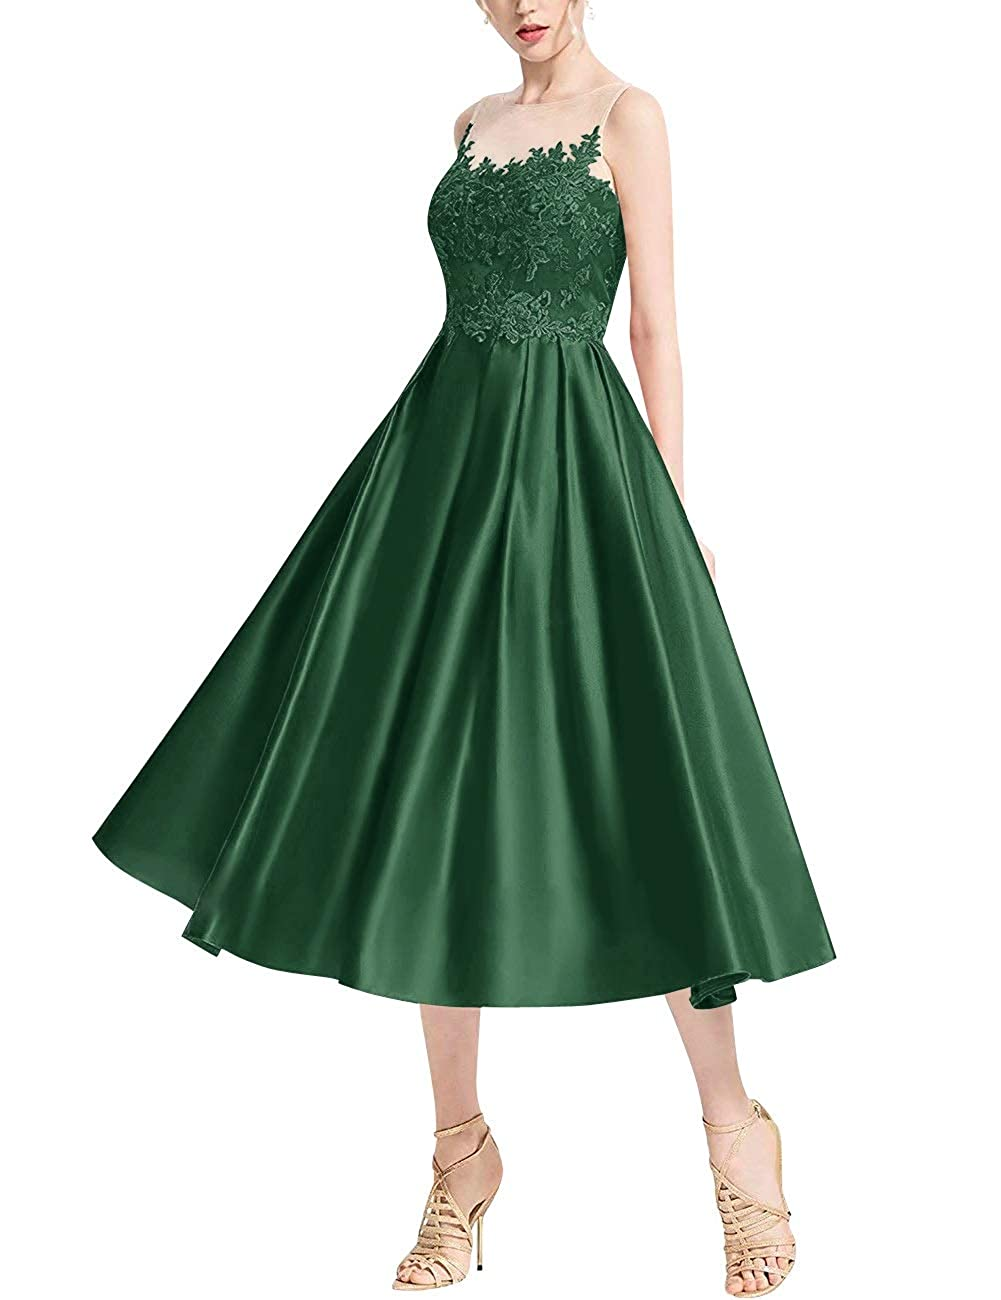 Hunter Green MorySong Women's Lace Illusion Bateau Neck Tea Length Cocktail Homecoming Dress